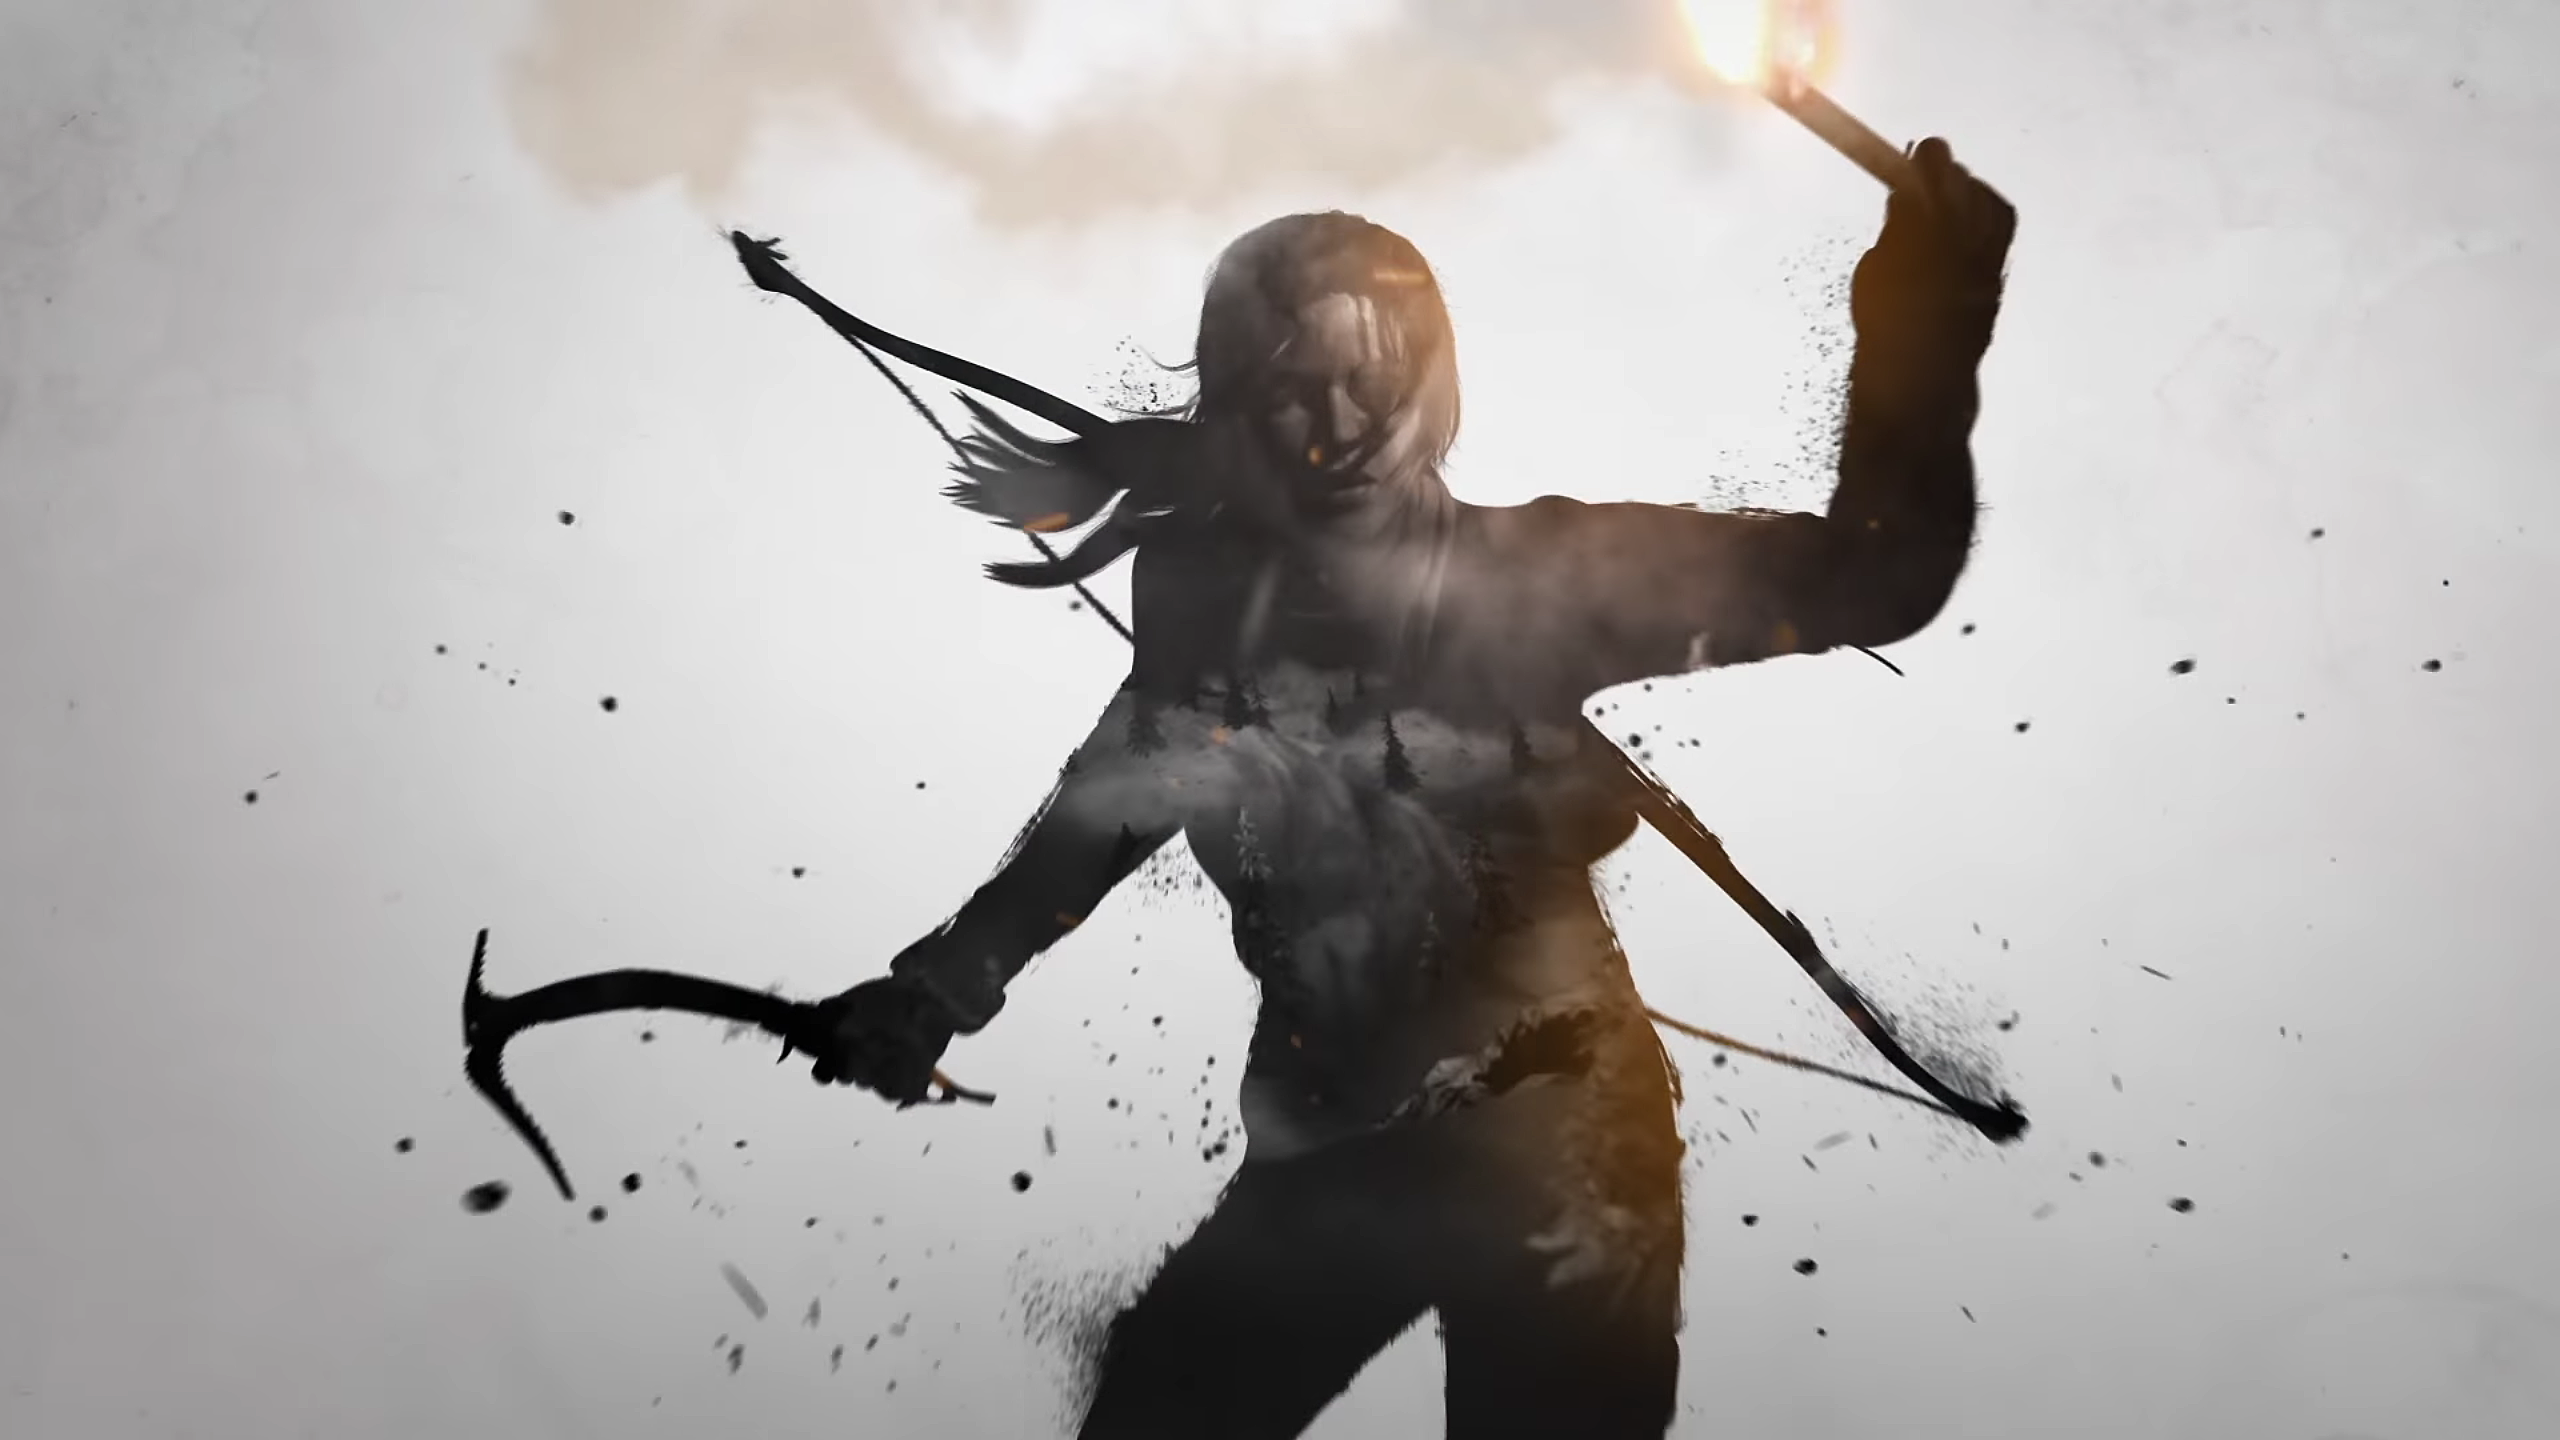 Rise Of The Tomb Raider Wallpapers Tomb Raider Rise Of The Tomb Tomb Raider Wallpaper